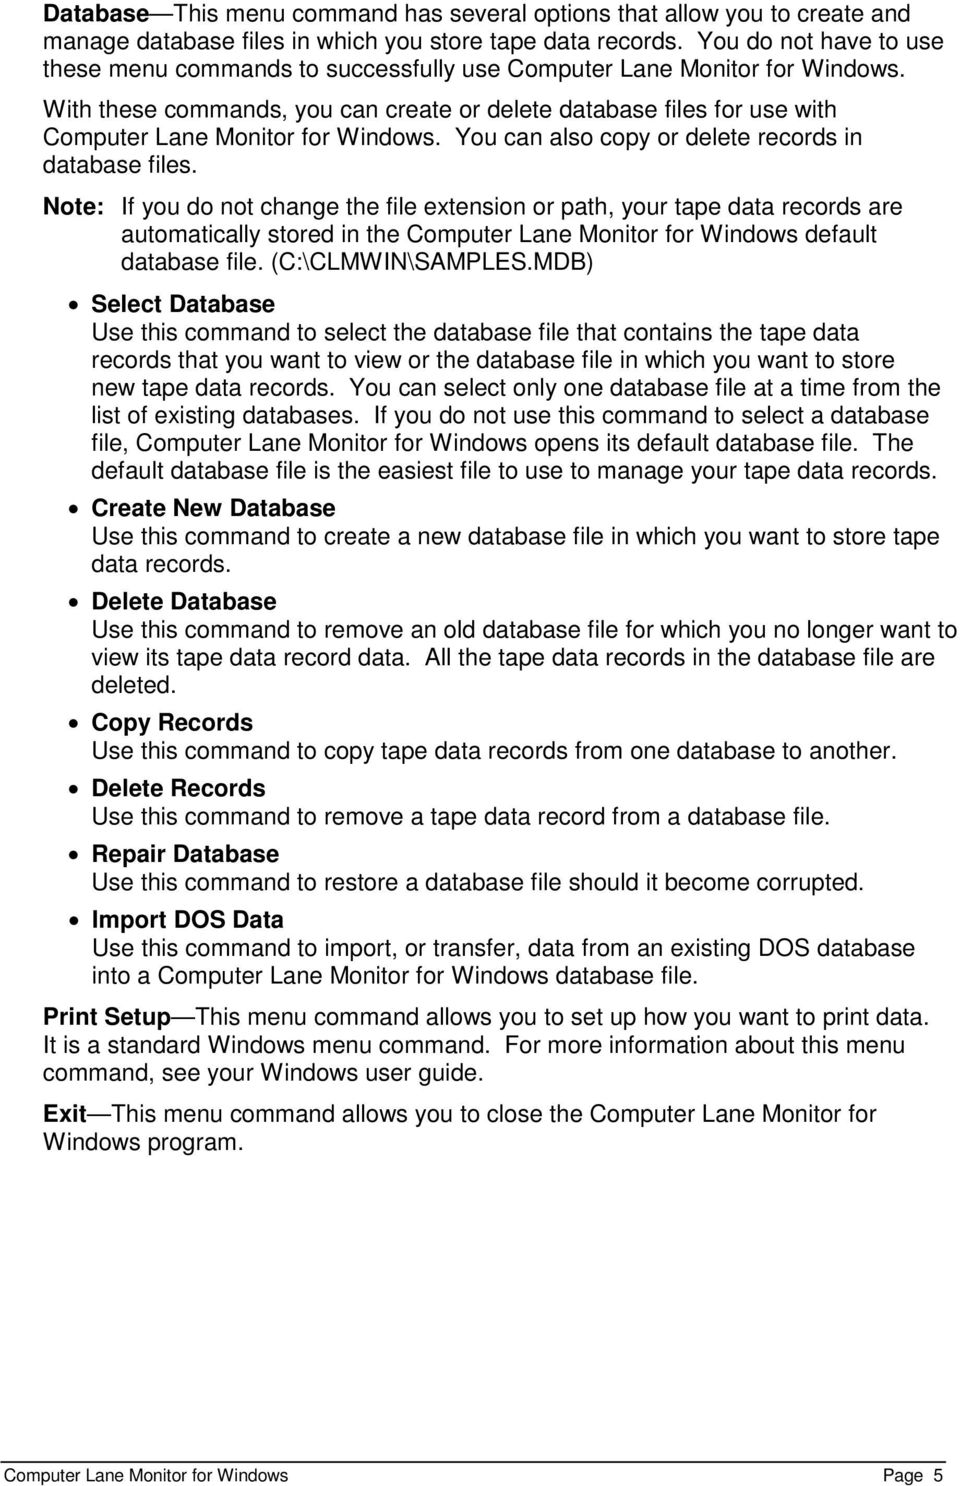 With these commands, you can create or delete database files for use with Computer Lane Monitor for Windows. You can also copy or delete records in database files.